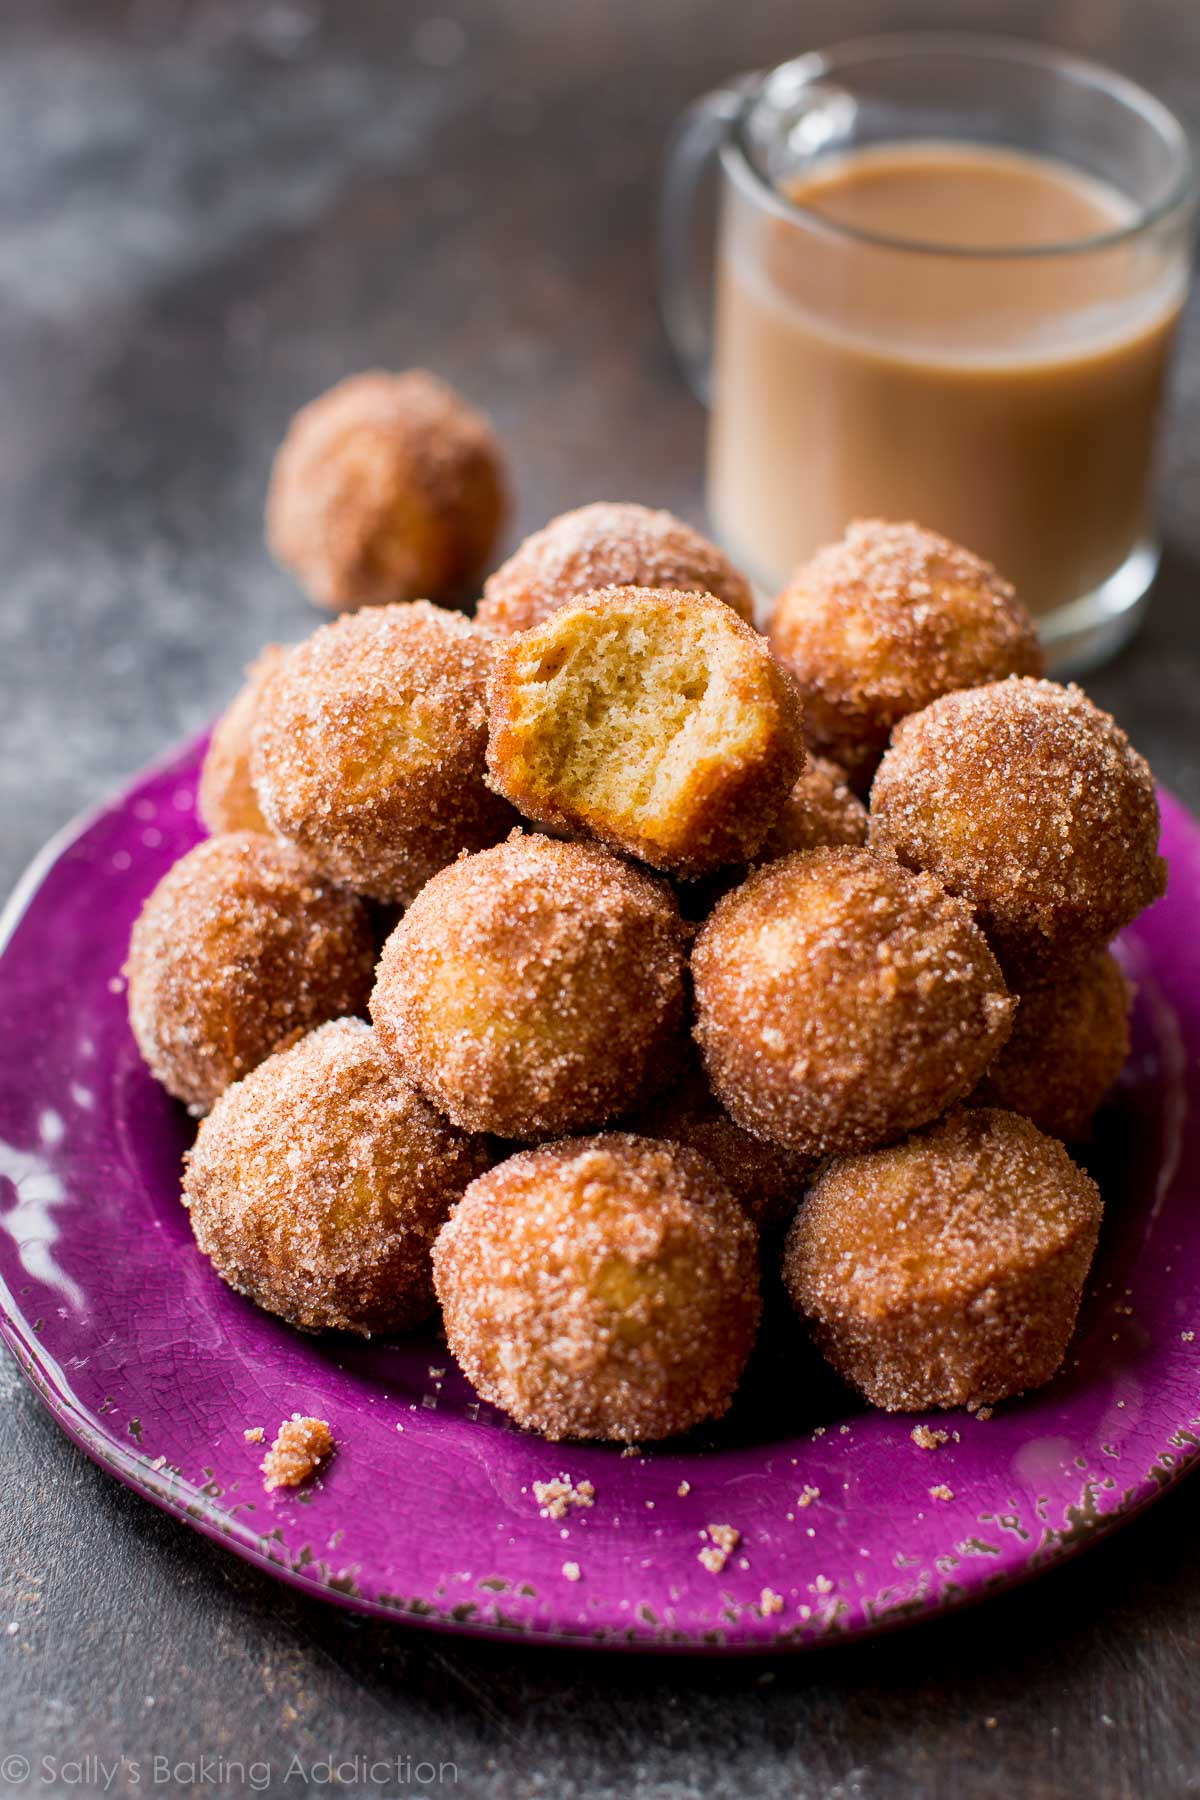 These easy chai spice donut holes are ready in about 30 minutes! Recipe on sallysbakingaddiction.com